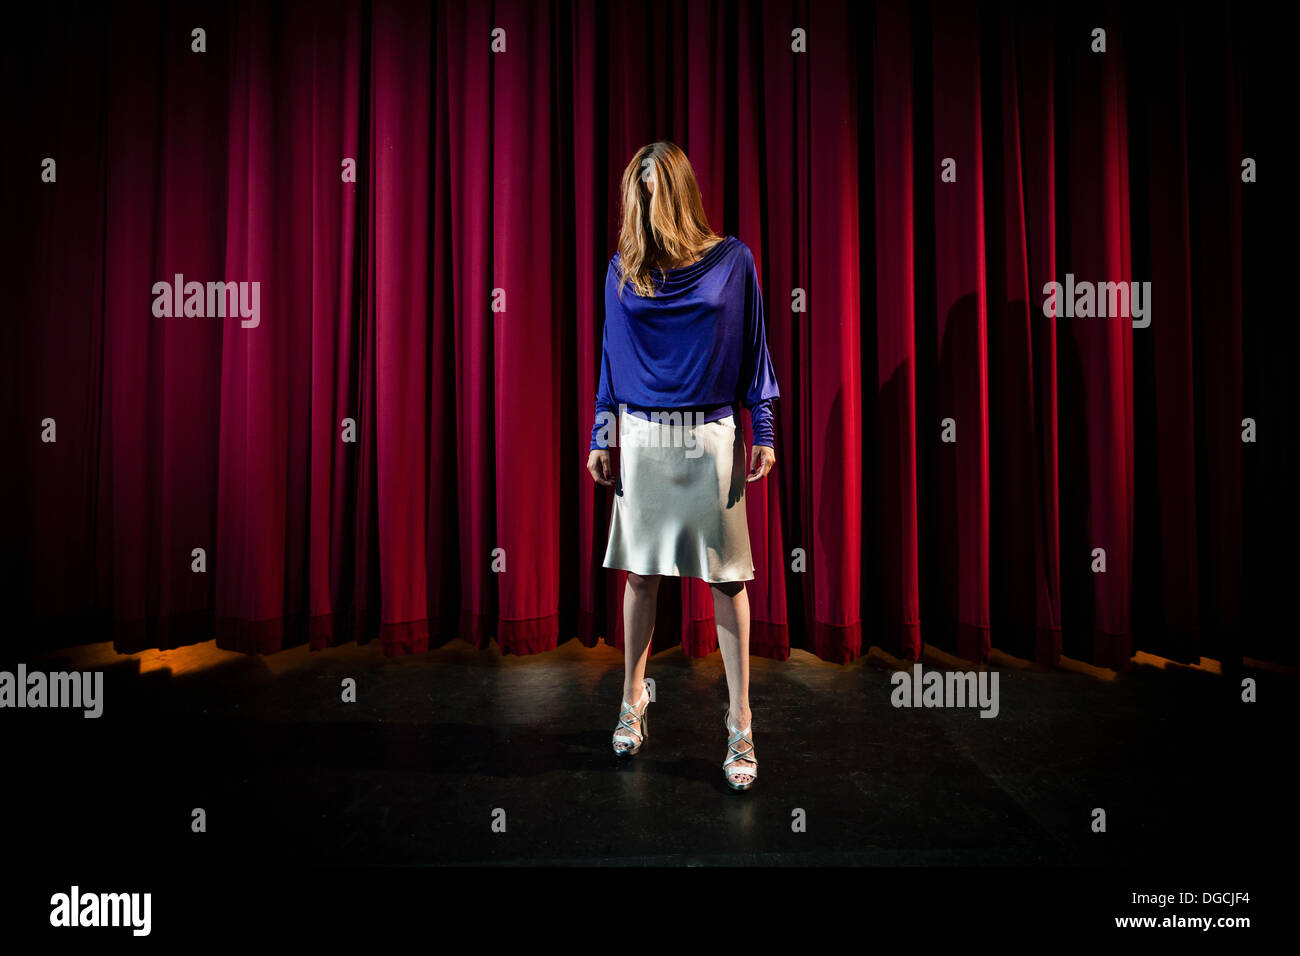 Mature woman standing in theatre stage with hair covering face Stock Photo